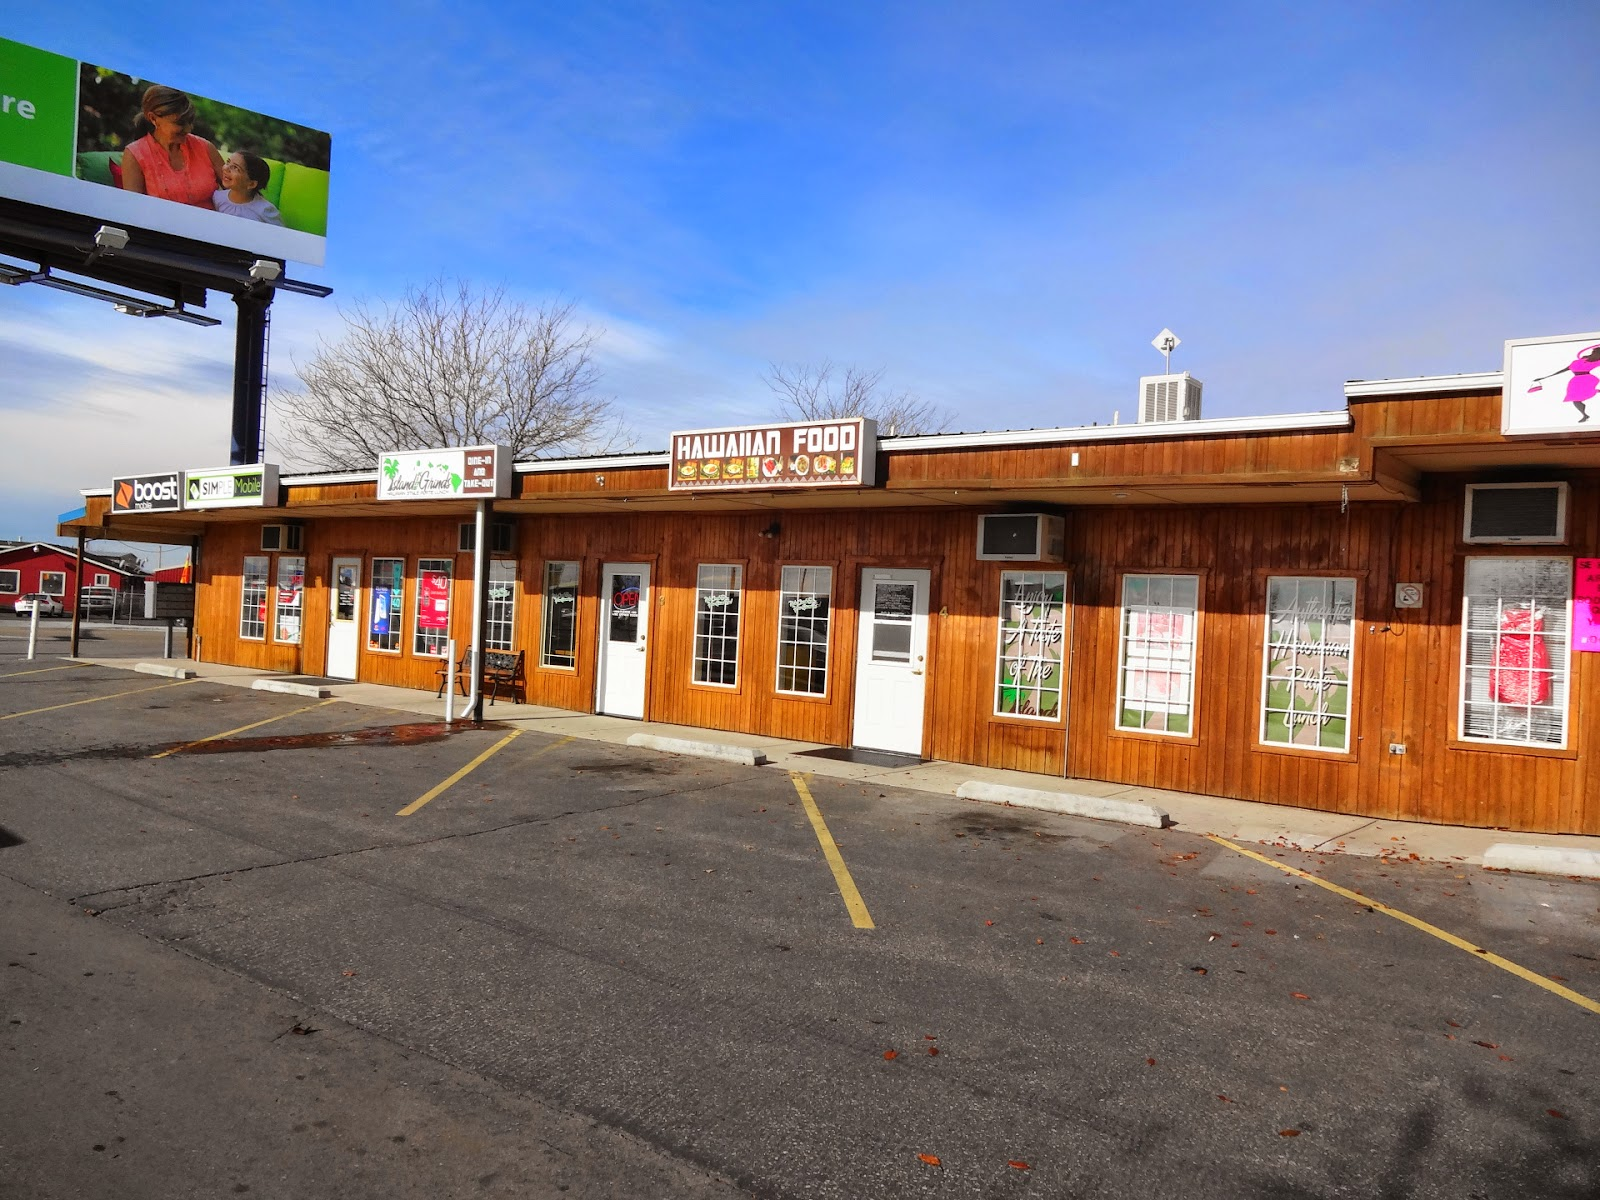 I Ve Mentioned That A Lot Of Restaurants In Nampa Tend To Not Pay Much Attention Their Exterior Earance But The Little Wooden Strip Mall Houses